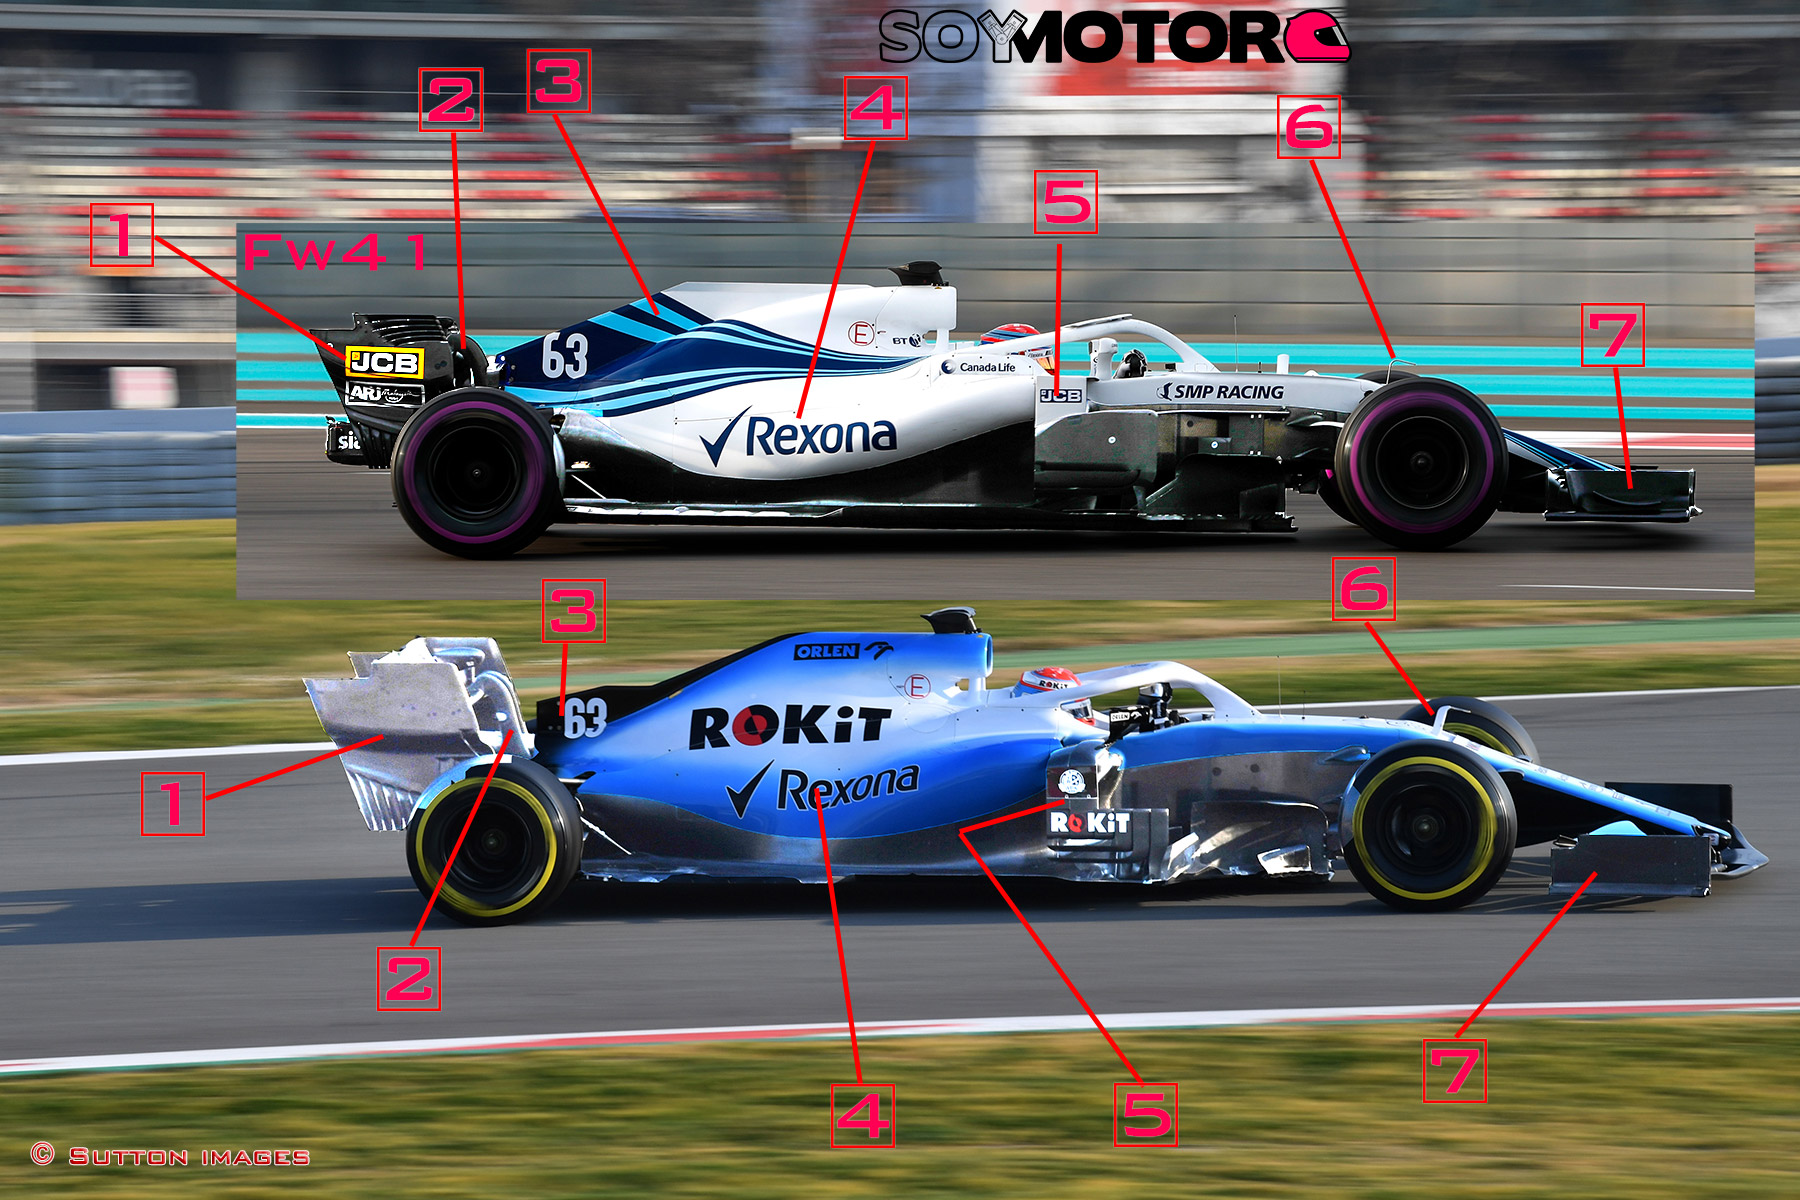 williams-lateral-soymotor.jpg